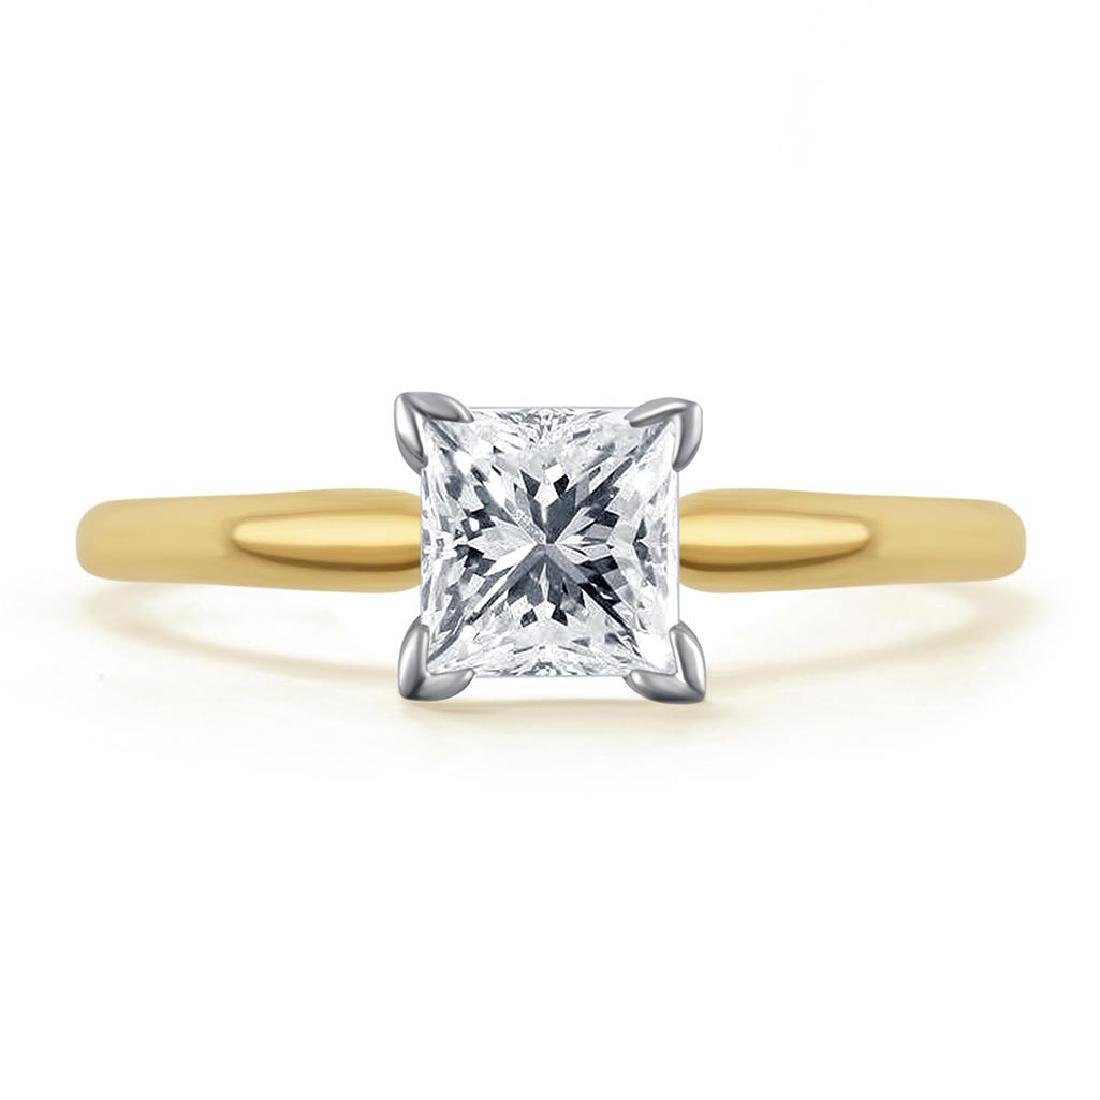 CERTIFIED 1.01 CTW PRINCESS E/VS1 SOLITAIRE RING IN 14K